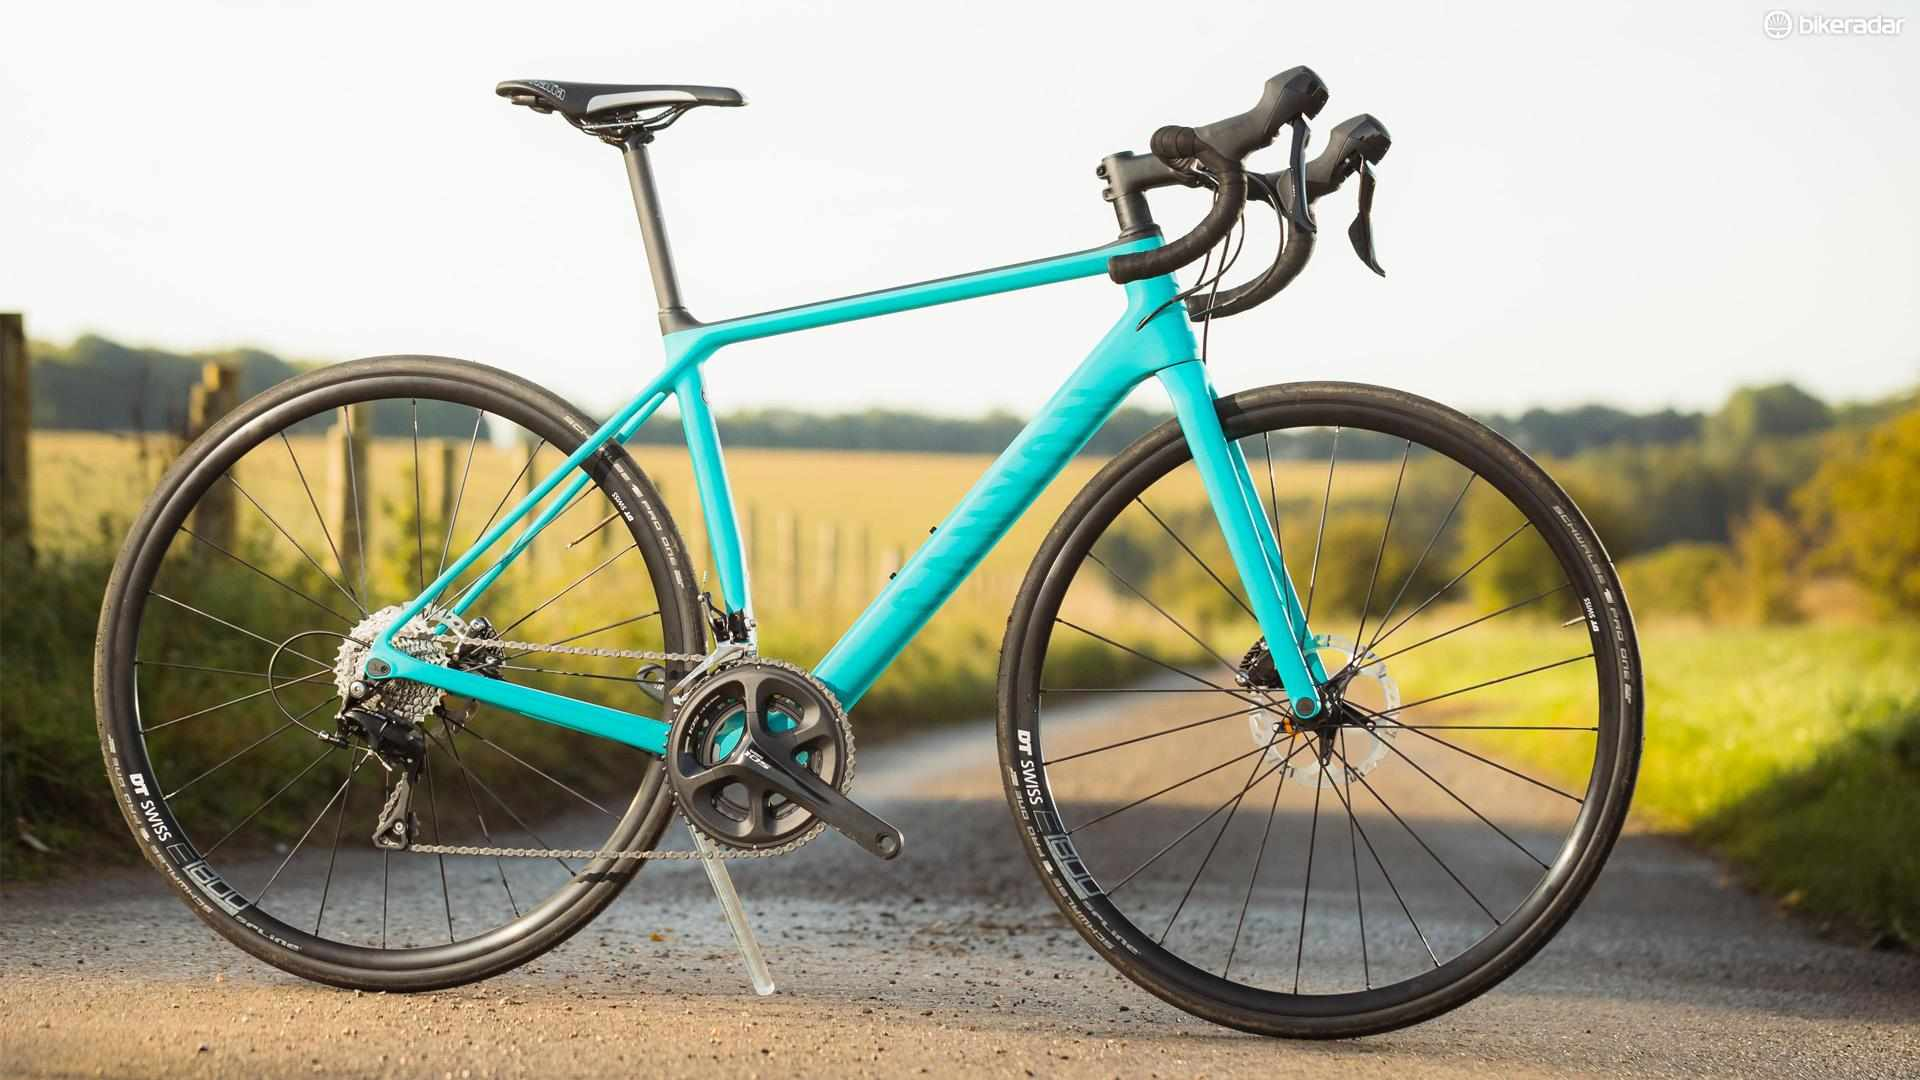 The all-new Canyon Endurace WMN features women's specific geometry